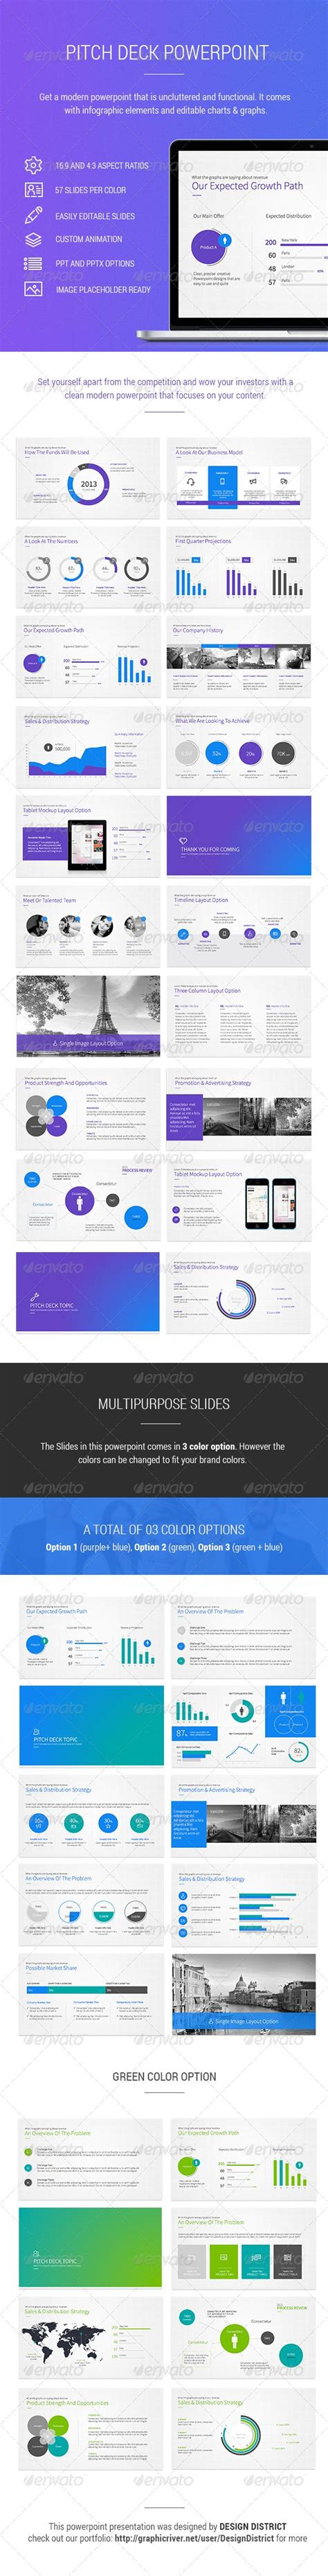 powerpoint template by design district via behance 34 best images about portfolio powerpoint templates on